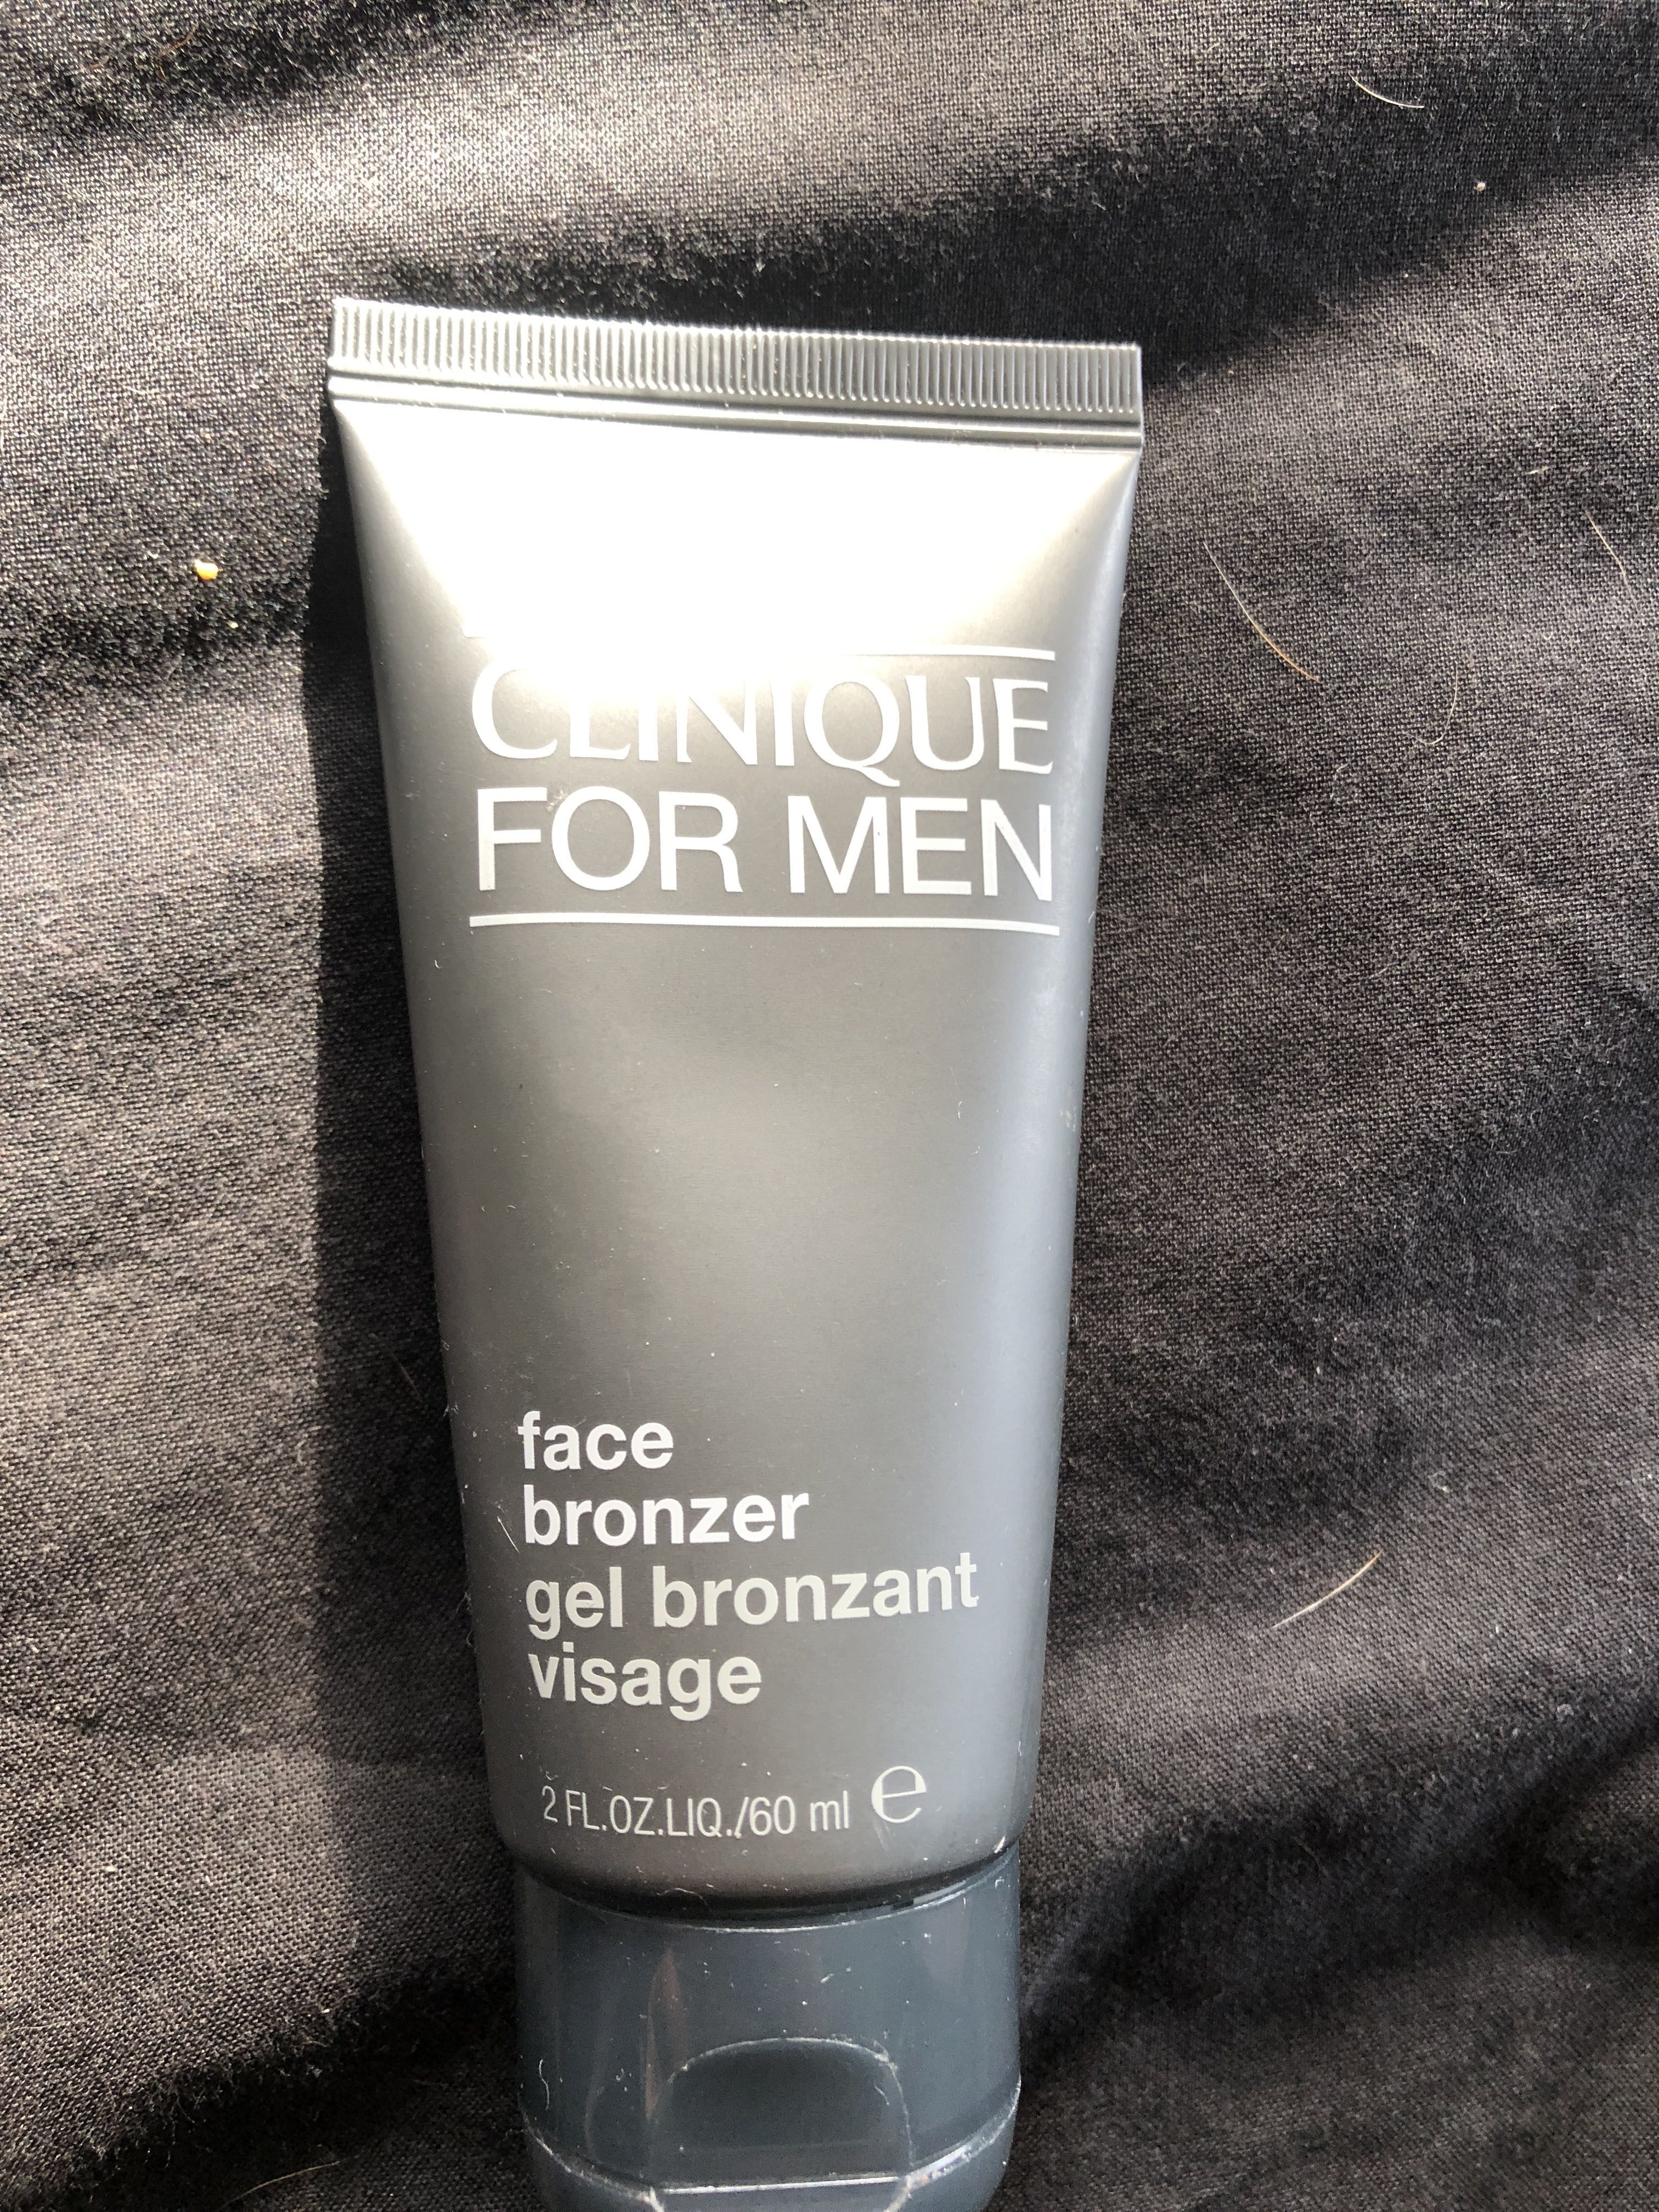 Face bronzer - Product - fr